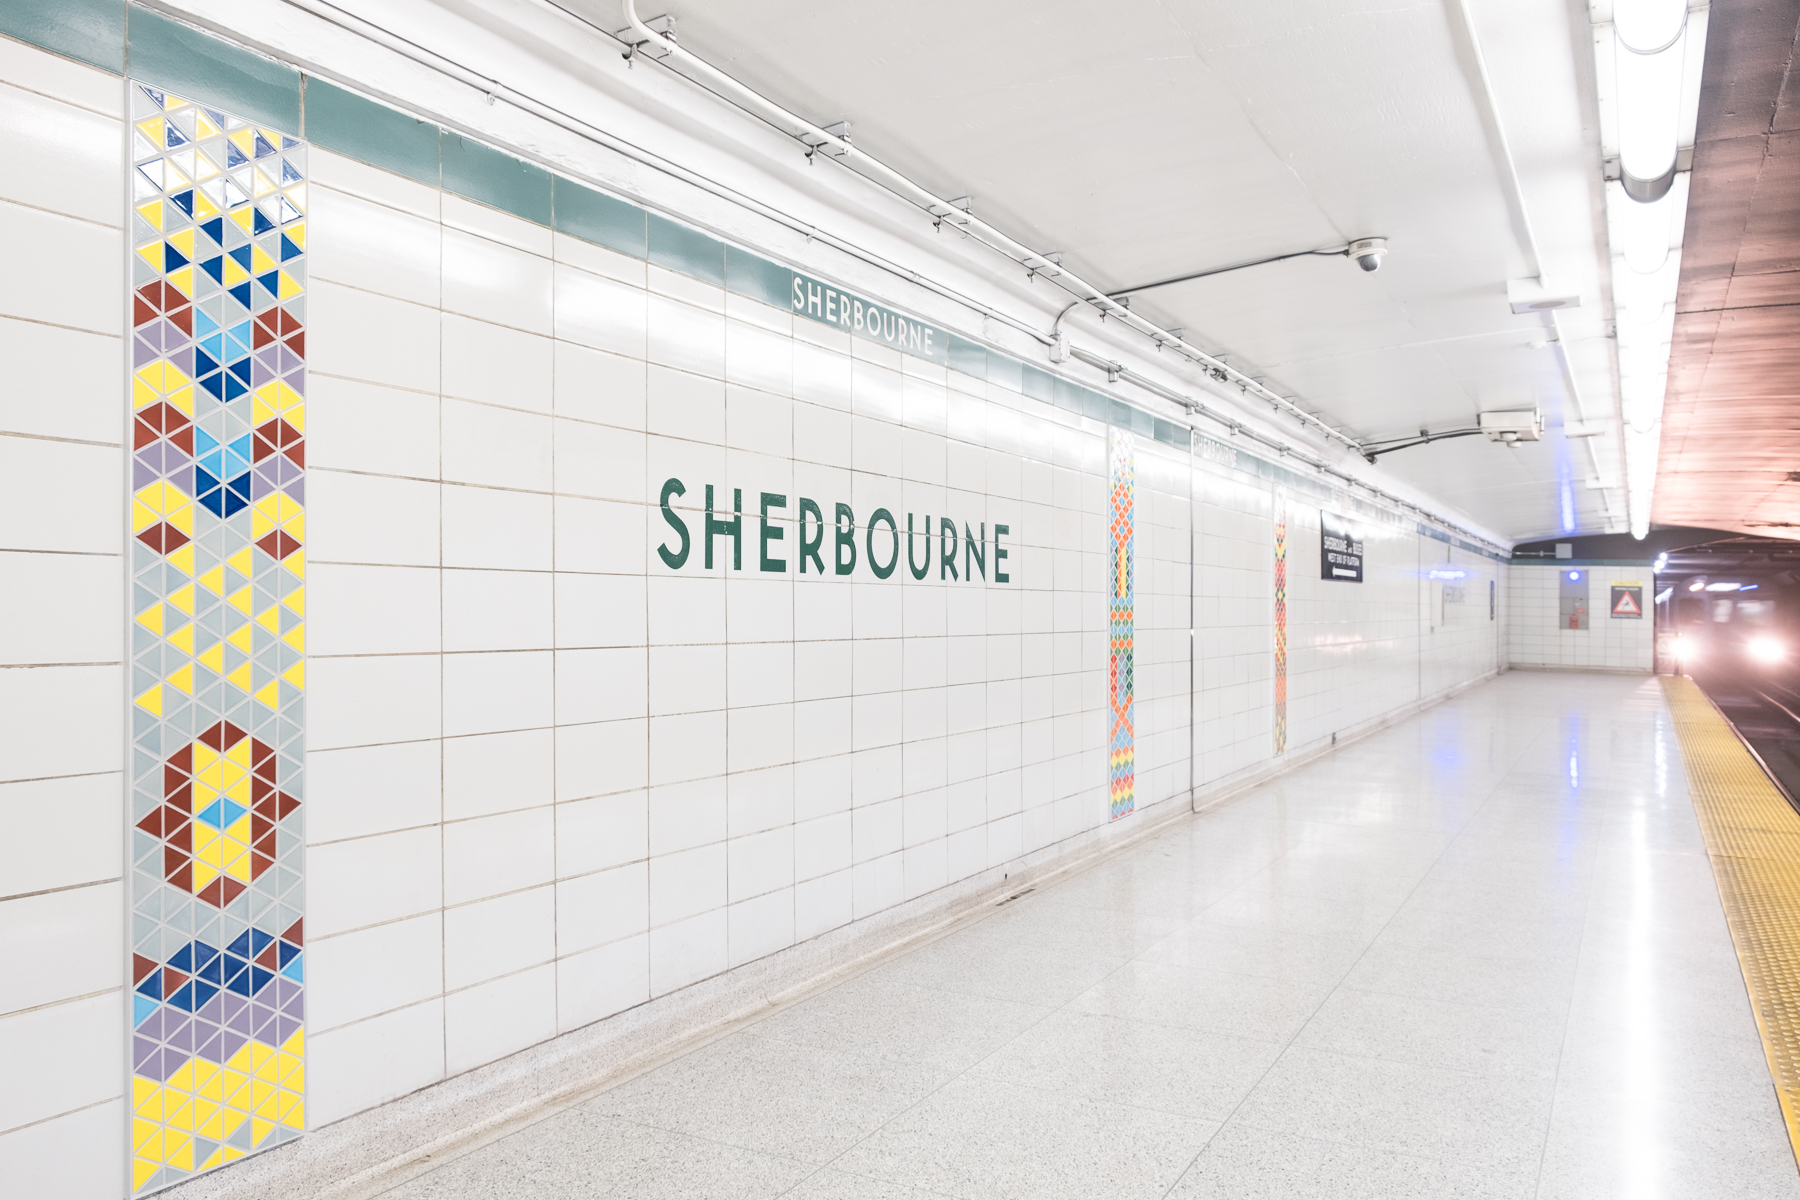 TTC Sherbourne – The Whole Is Greater Than The Sum Of Its Parts